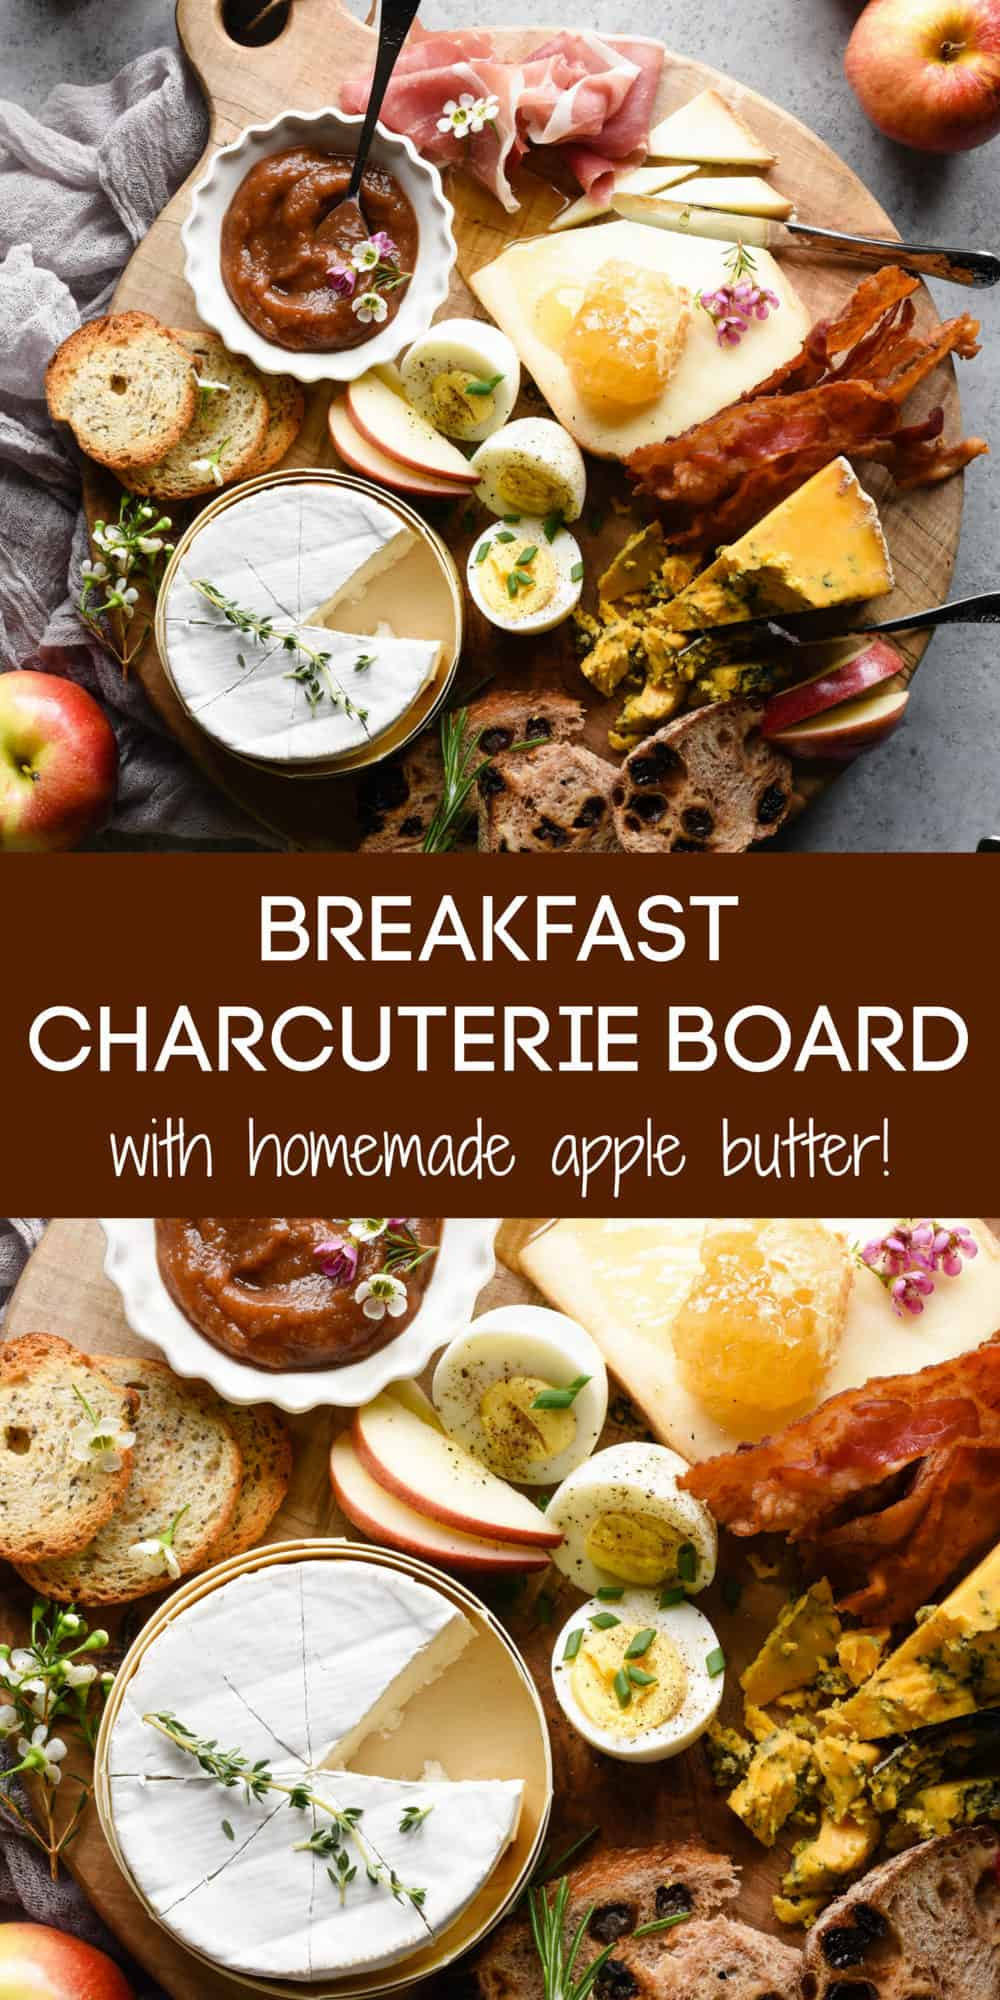 Collage of images of breakfast cheese and charcuterie board with overlay: BREAKFAST CHARCUTERIE BOARD with homemade apple butter!